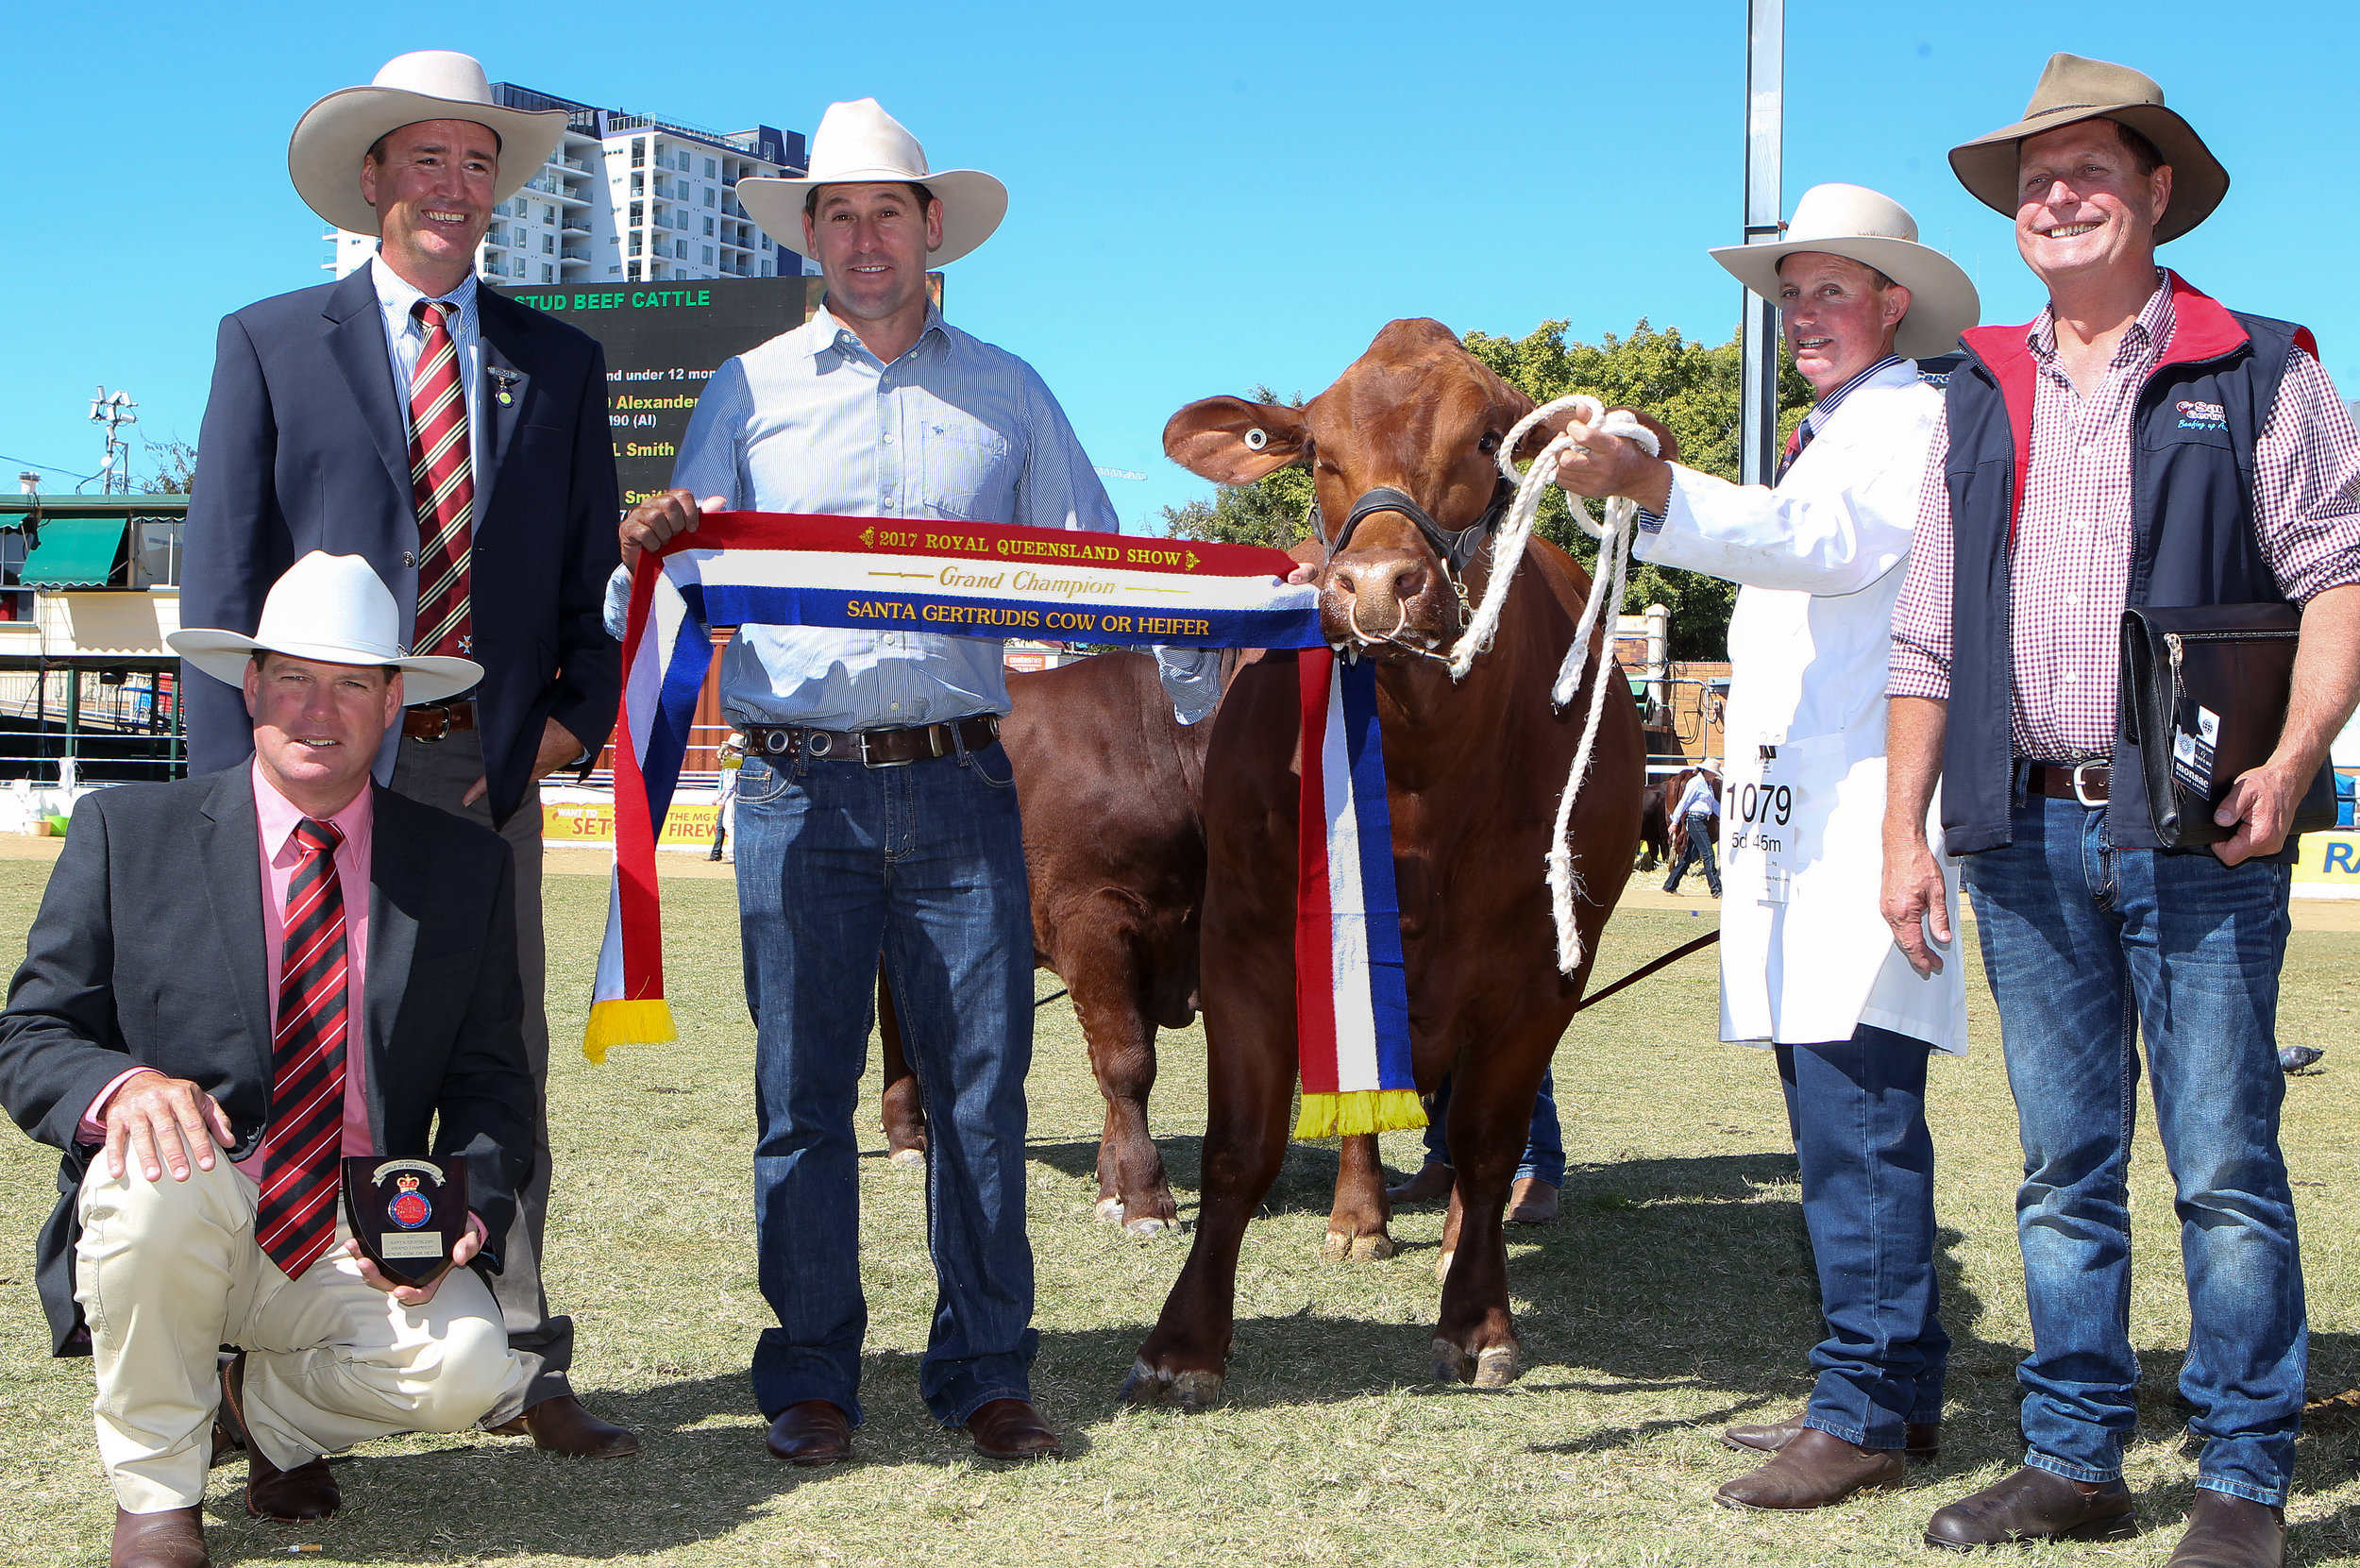 Yarrawonga Escort K425- Grand Champion Cow  awarded the Big S Group trophy and Elders Shield of Excellence. Shield presented by Michael Smith from Elders, with Judge Darren Childs and Andrew Bassingthwaighte, Trophy presented by Glen Holt and cow led by Brendan Emery.